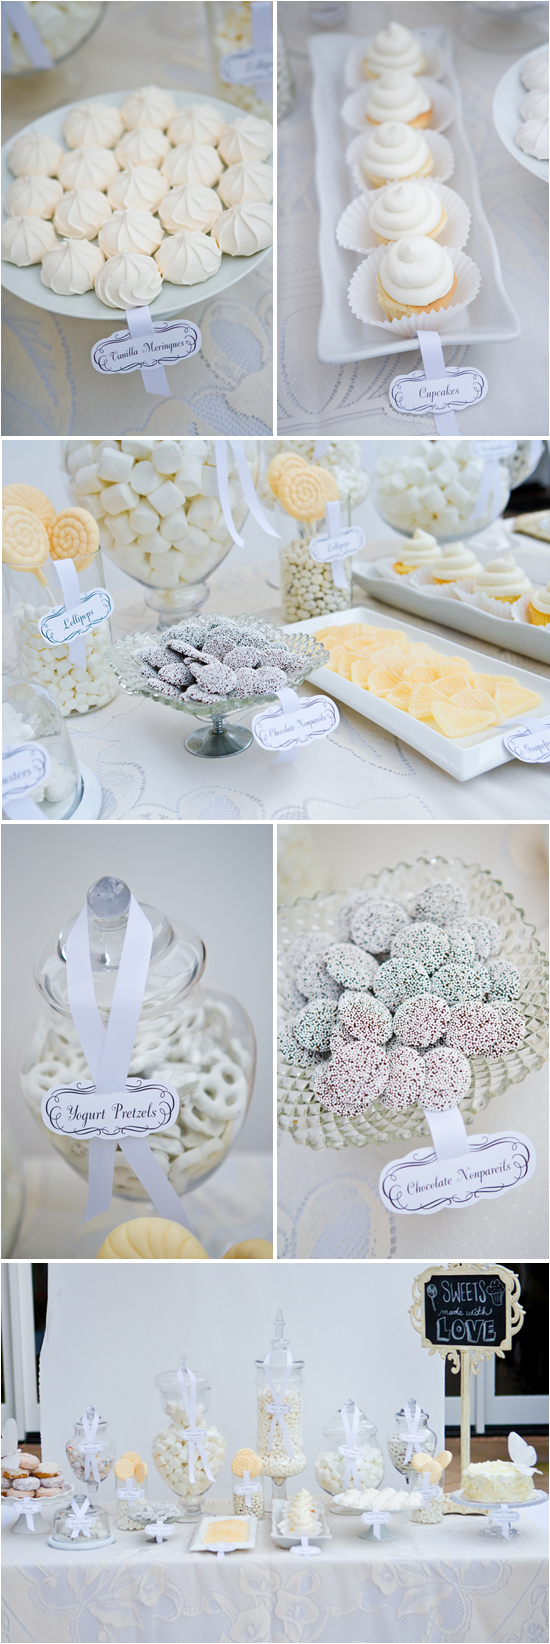 Favors & Gifts, Cakes, white, cake, Favors, Dessert, Candy, Bar